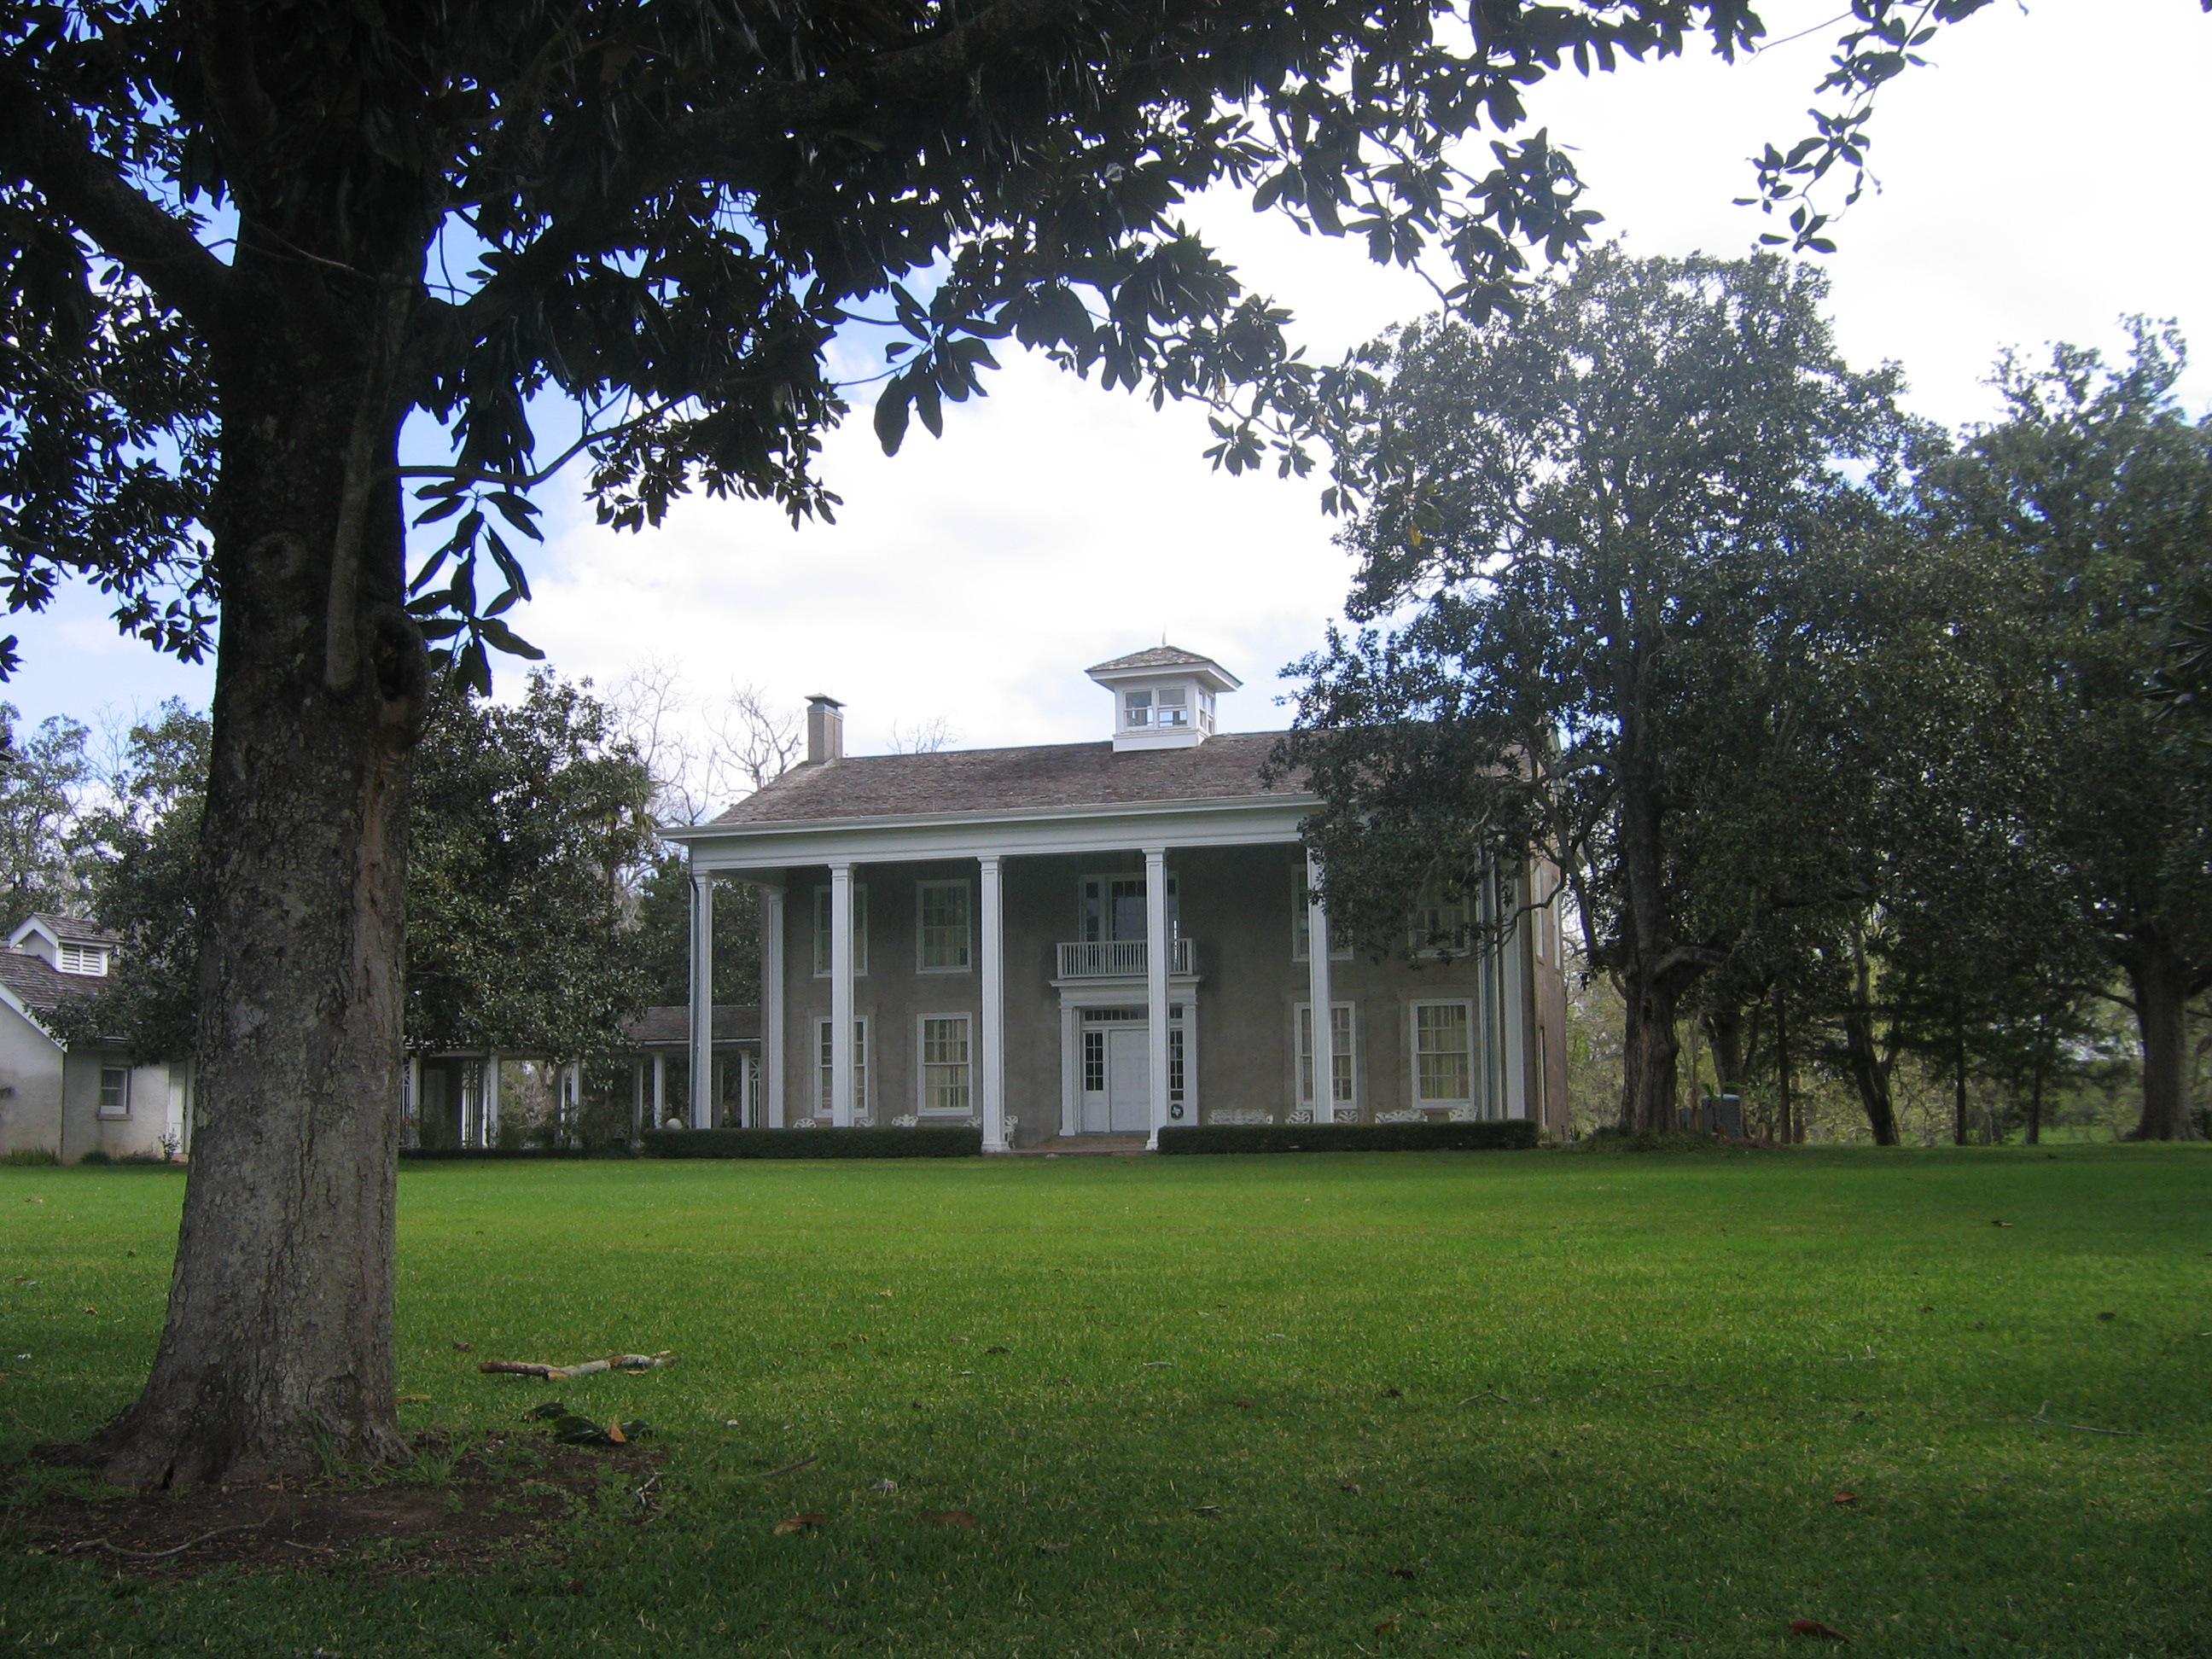 Varner-Hogg Plantation where oil was discovered in 1918 and provided Miss Ima with the money to pursue her philanthropy